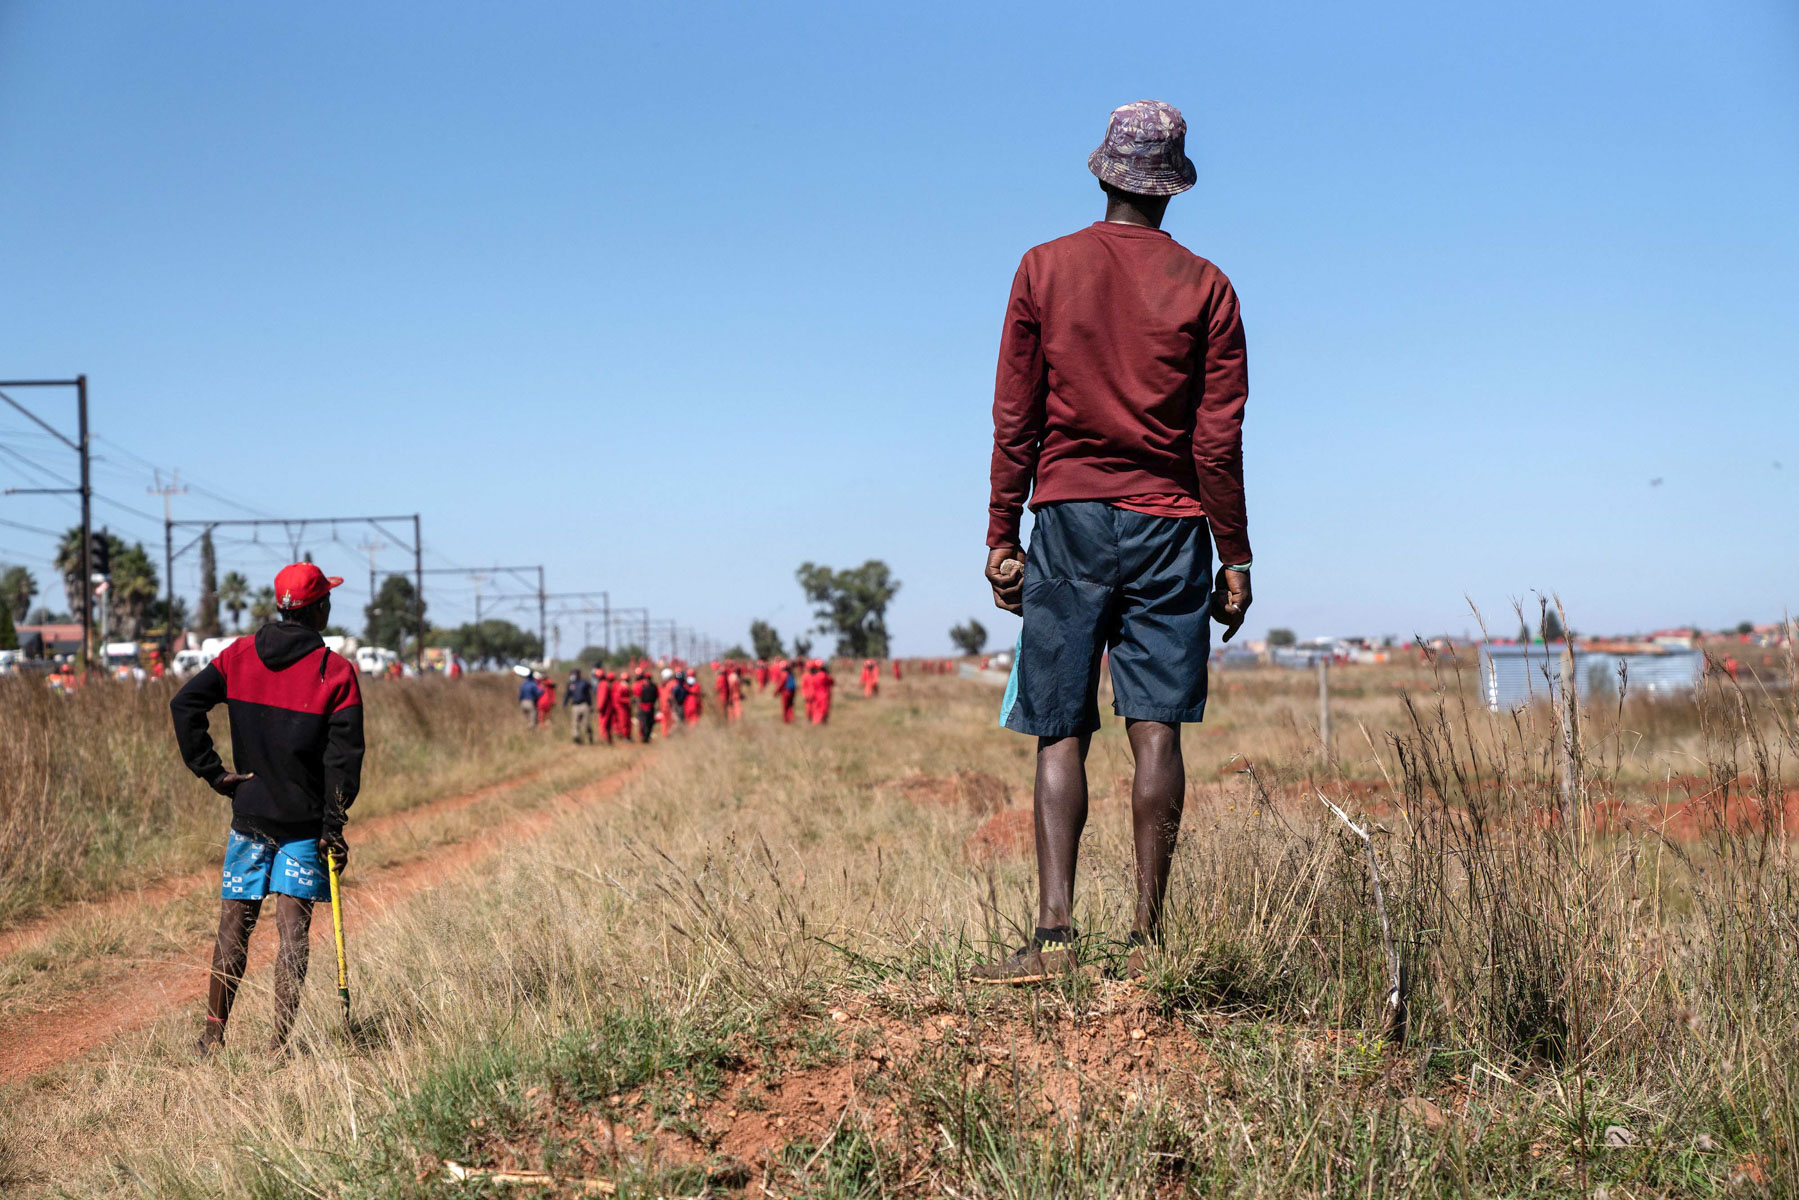 21 April 2020: A lull in the fighting between Lakeview residents, the Red Ants and members of the Johannesburg Metro Police Department. (Photograph by James Oatway)